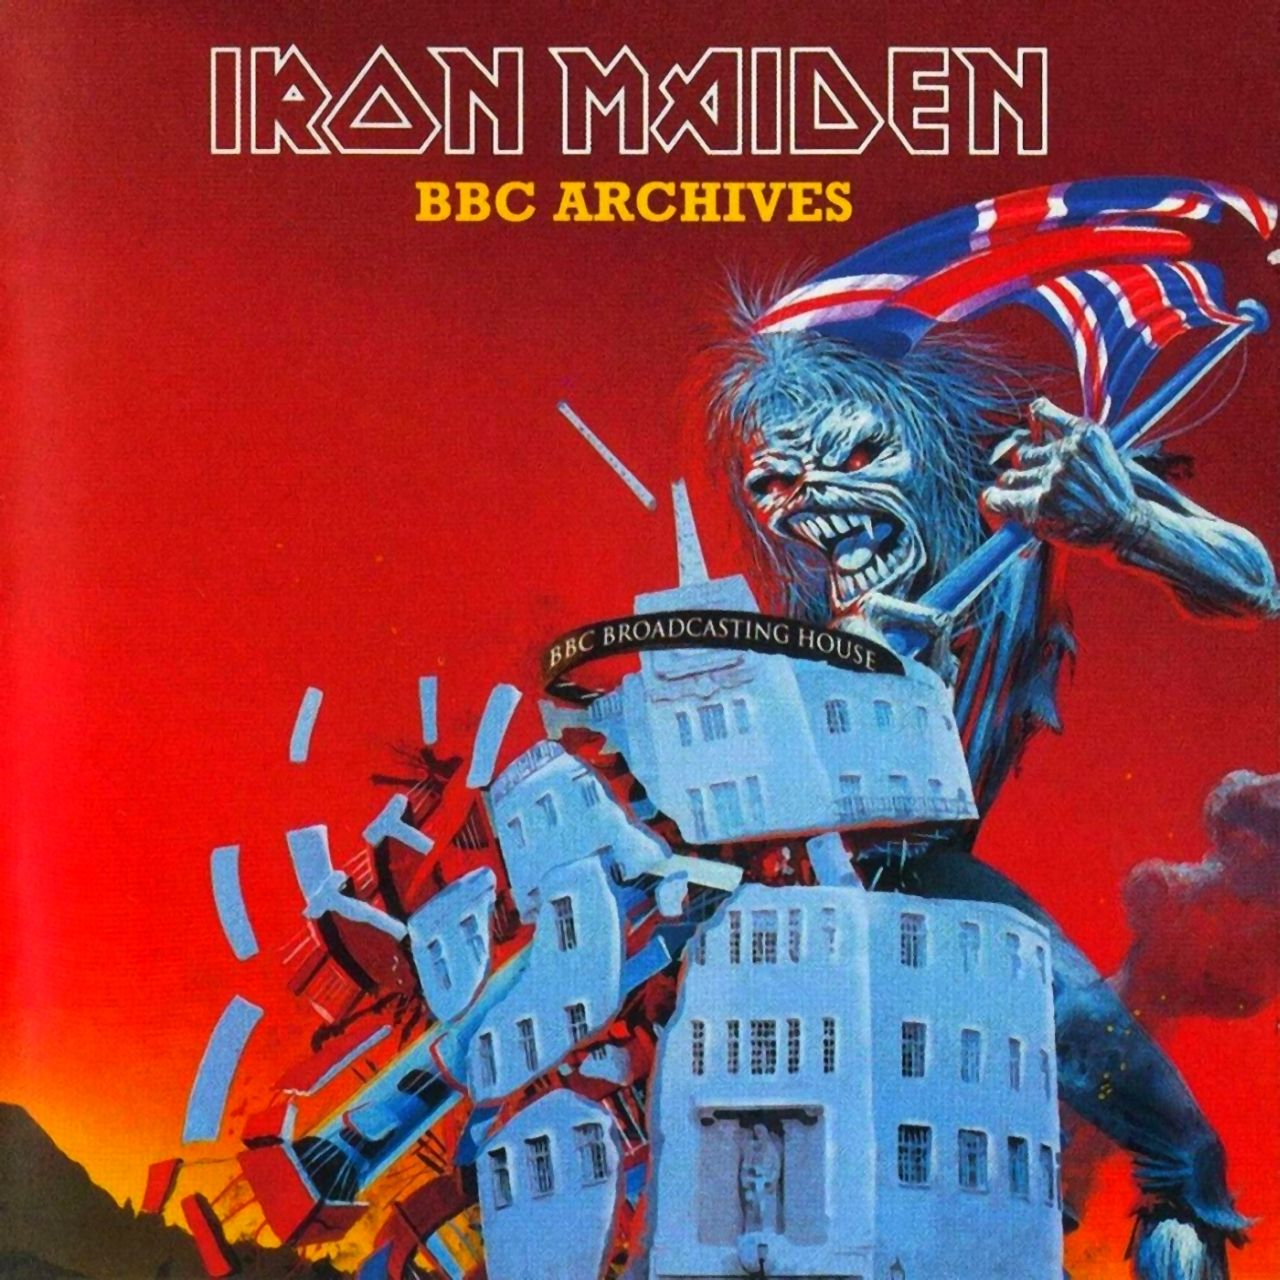 iron maiden eddies archive ebay